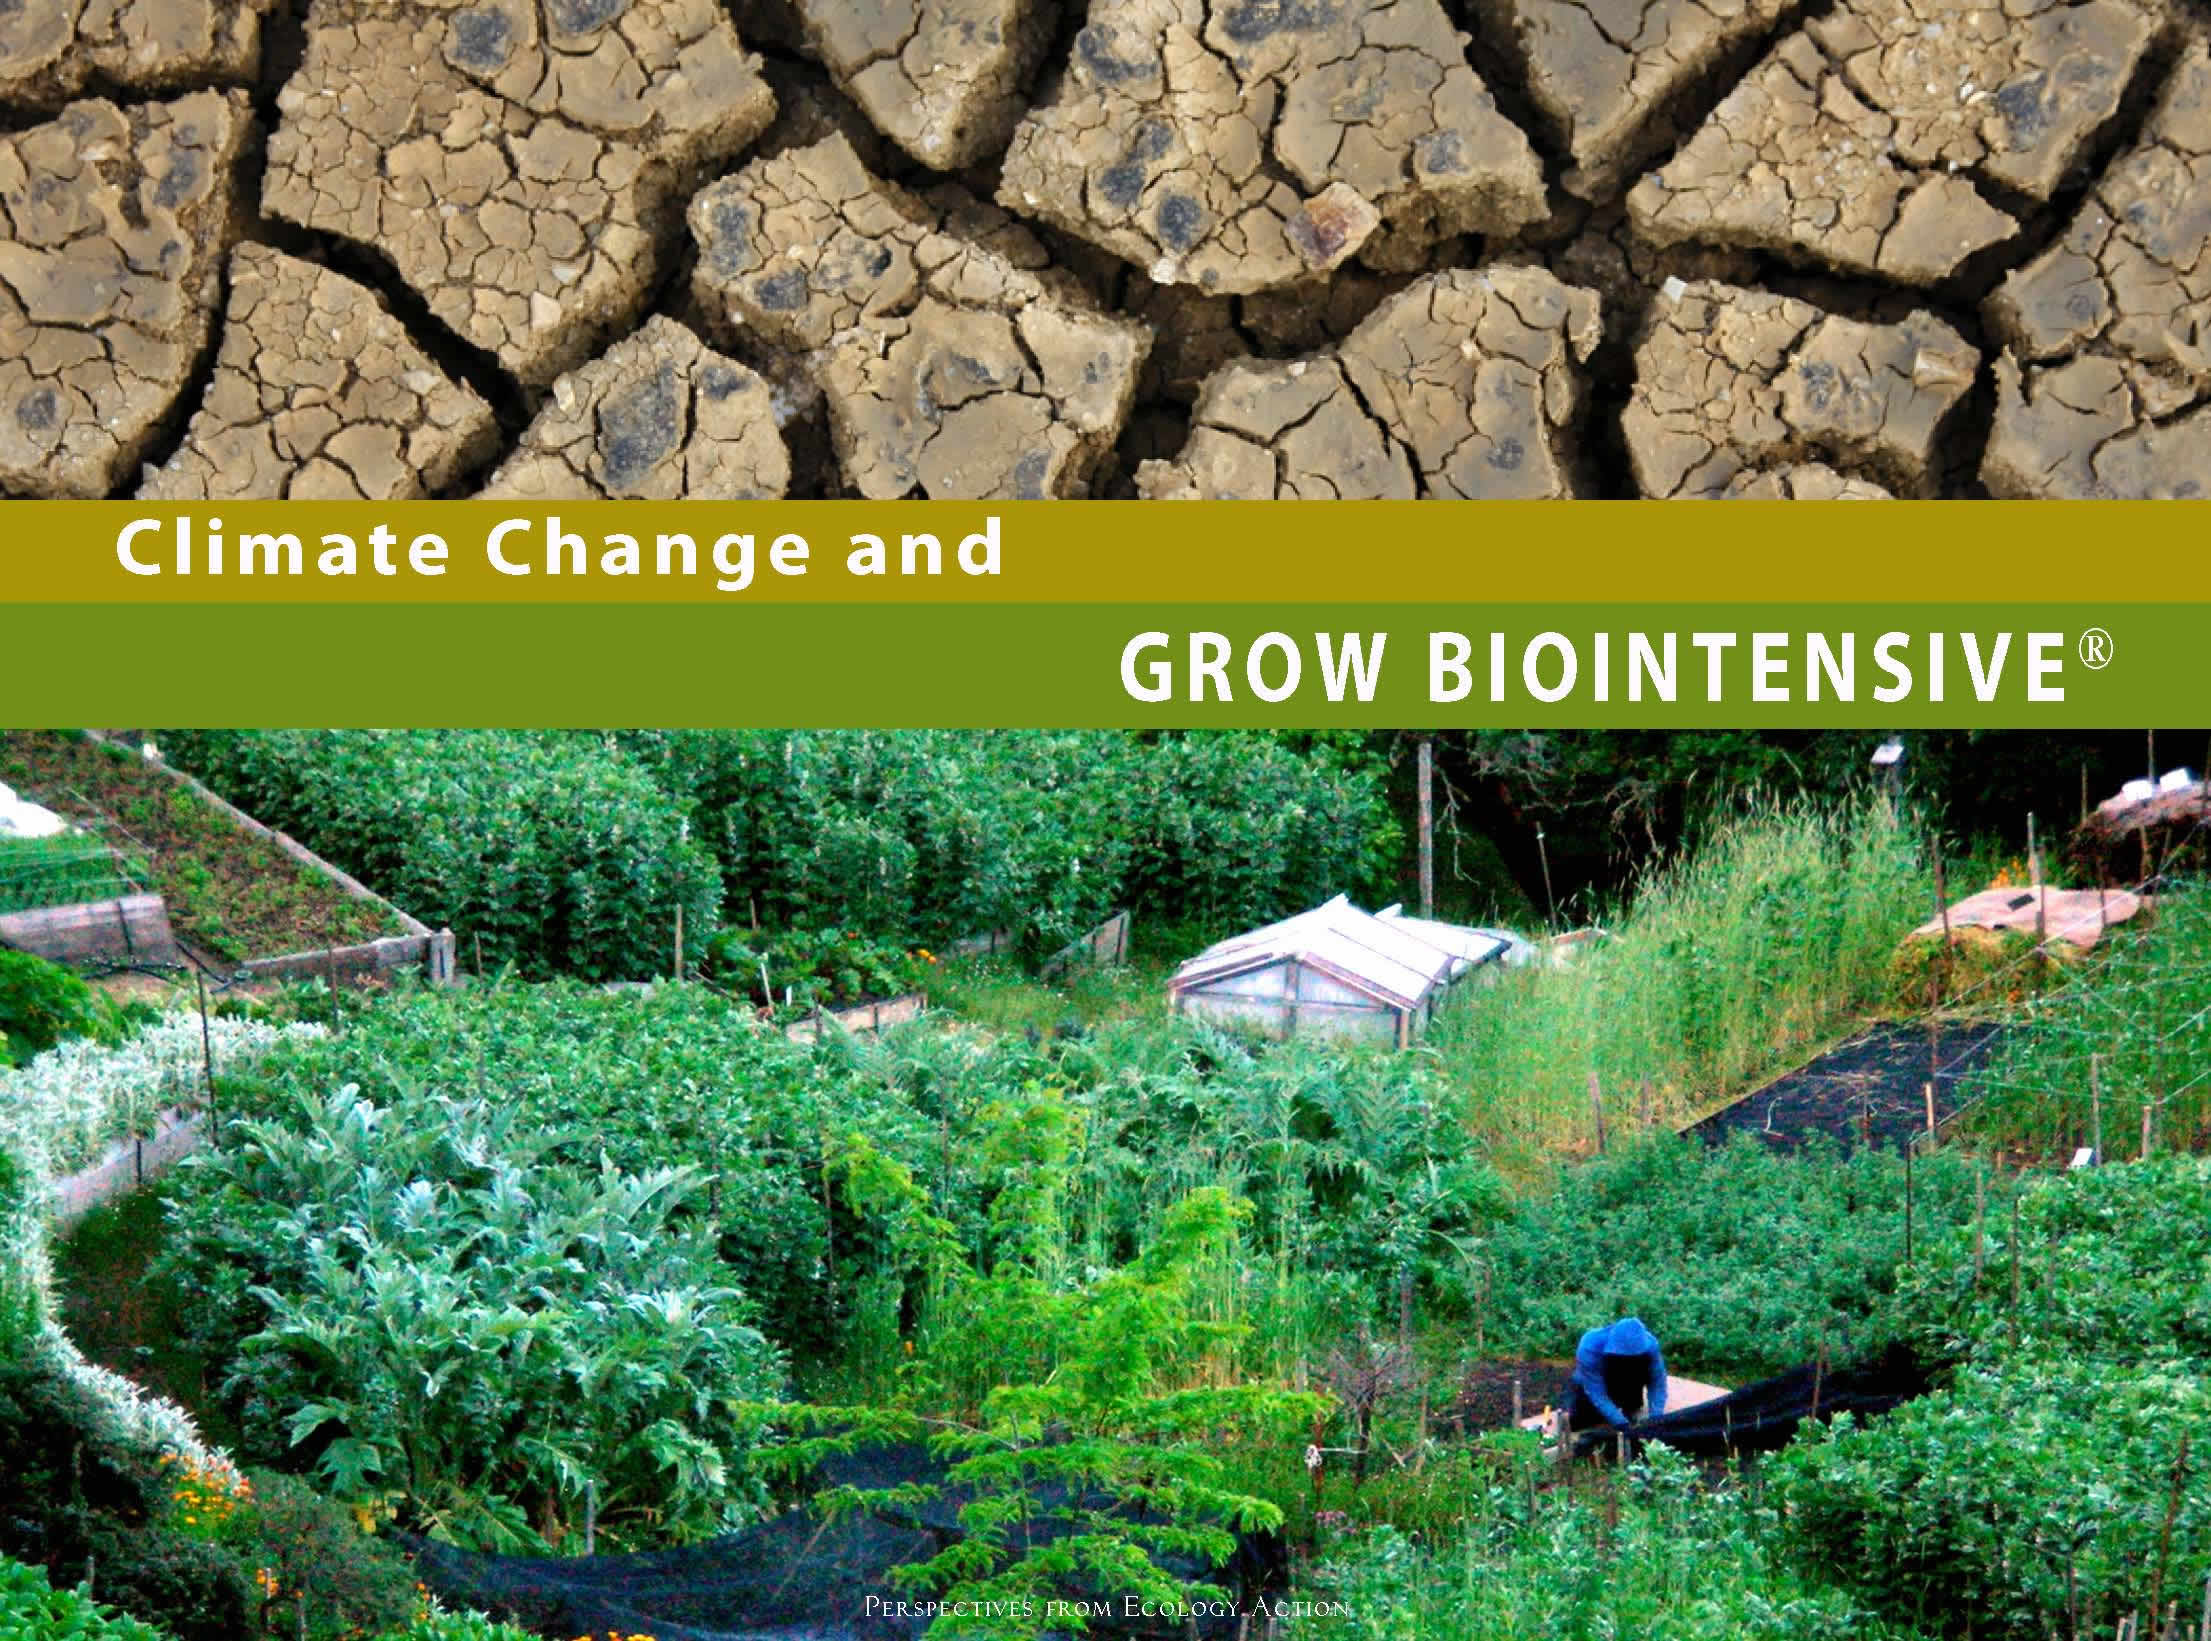 Climate Change and GROW BIOINTENSIVE Booklet Cover